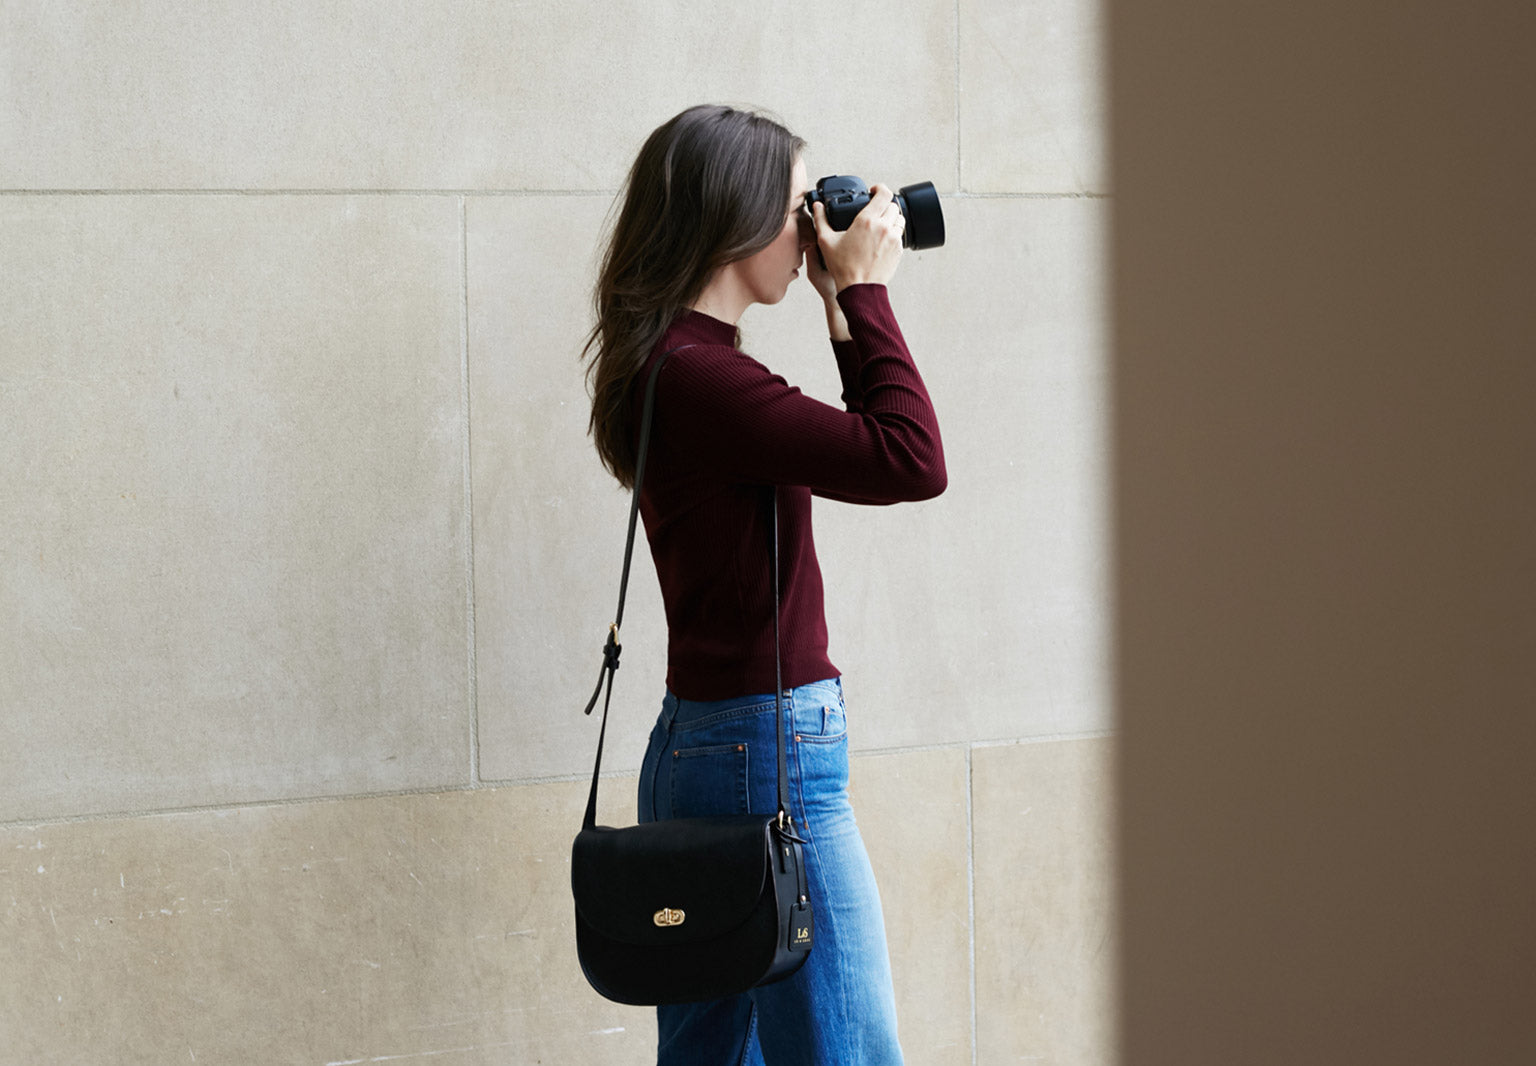 The Claremont camera bag, a stylish crossbody camera bag for DSLR cameras